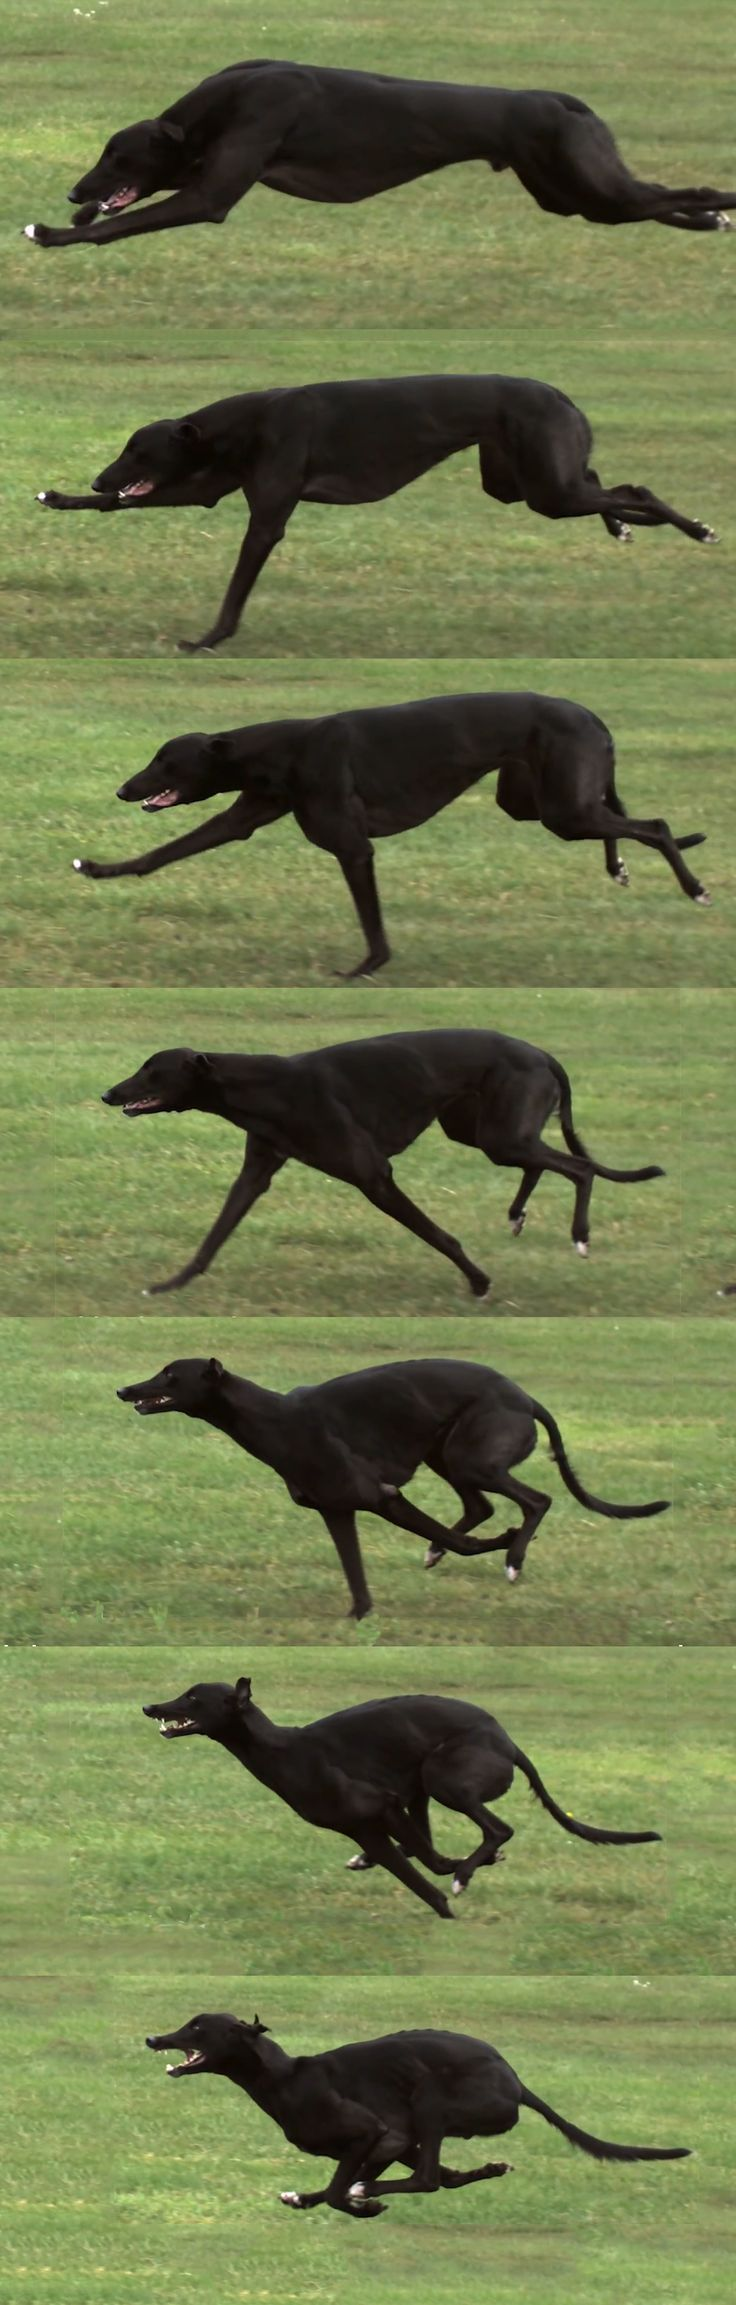 Greyhound run - This shows the grey's double suspension gallop, where all 4 feet are off the ground 2 times during a full stride. This is done when he's stretched out and tucked. Click link to watch a greyt video comparing Cheetah/Greyhound running. http://youtu.be/jc8Hno4M0Qs